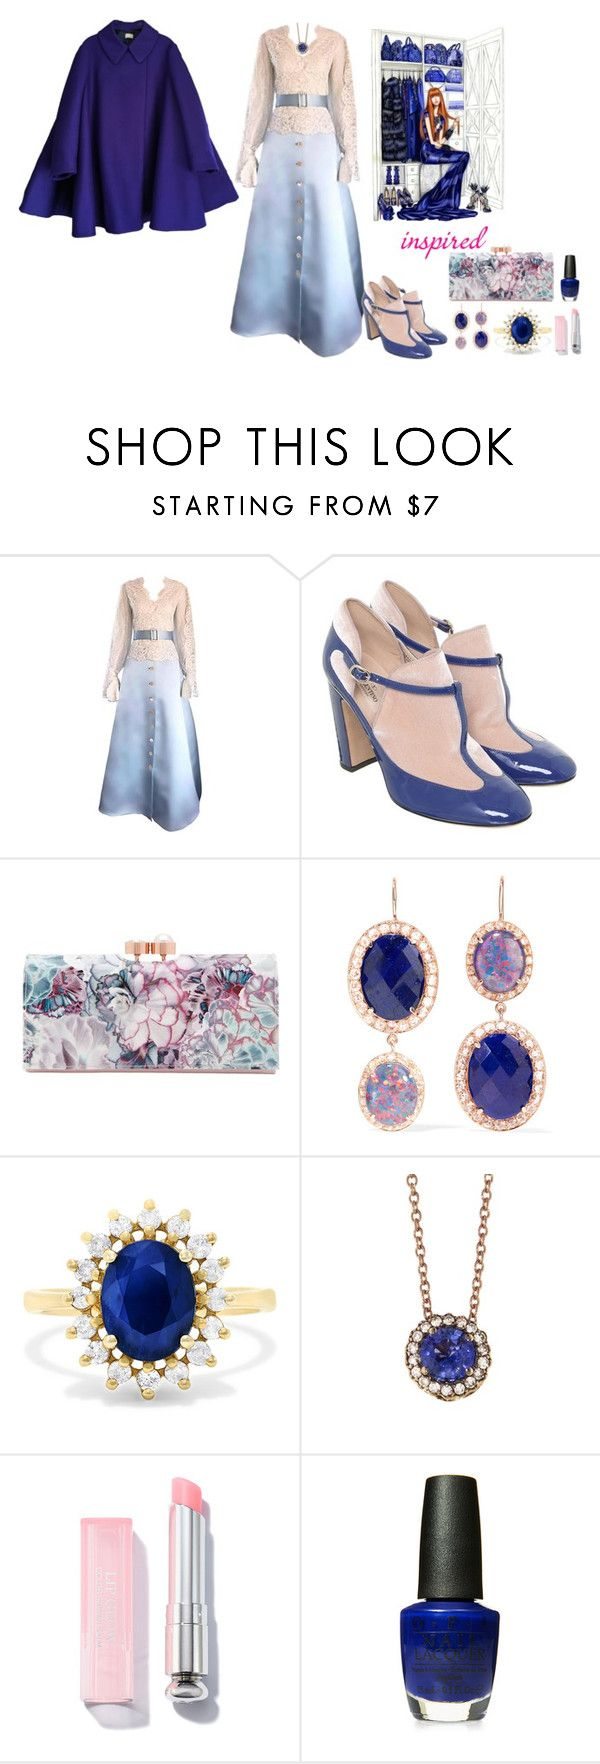 """""""Pastel Pink & Royal Blue"""" by freida-adams ❤ liked on Polyvore featuring Bill Blass, Valentino, Ted Baker, Andrea Fohrman, Effy Jewelry, Selim Mouzannar, OPI and Acne Studios"""